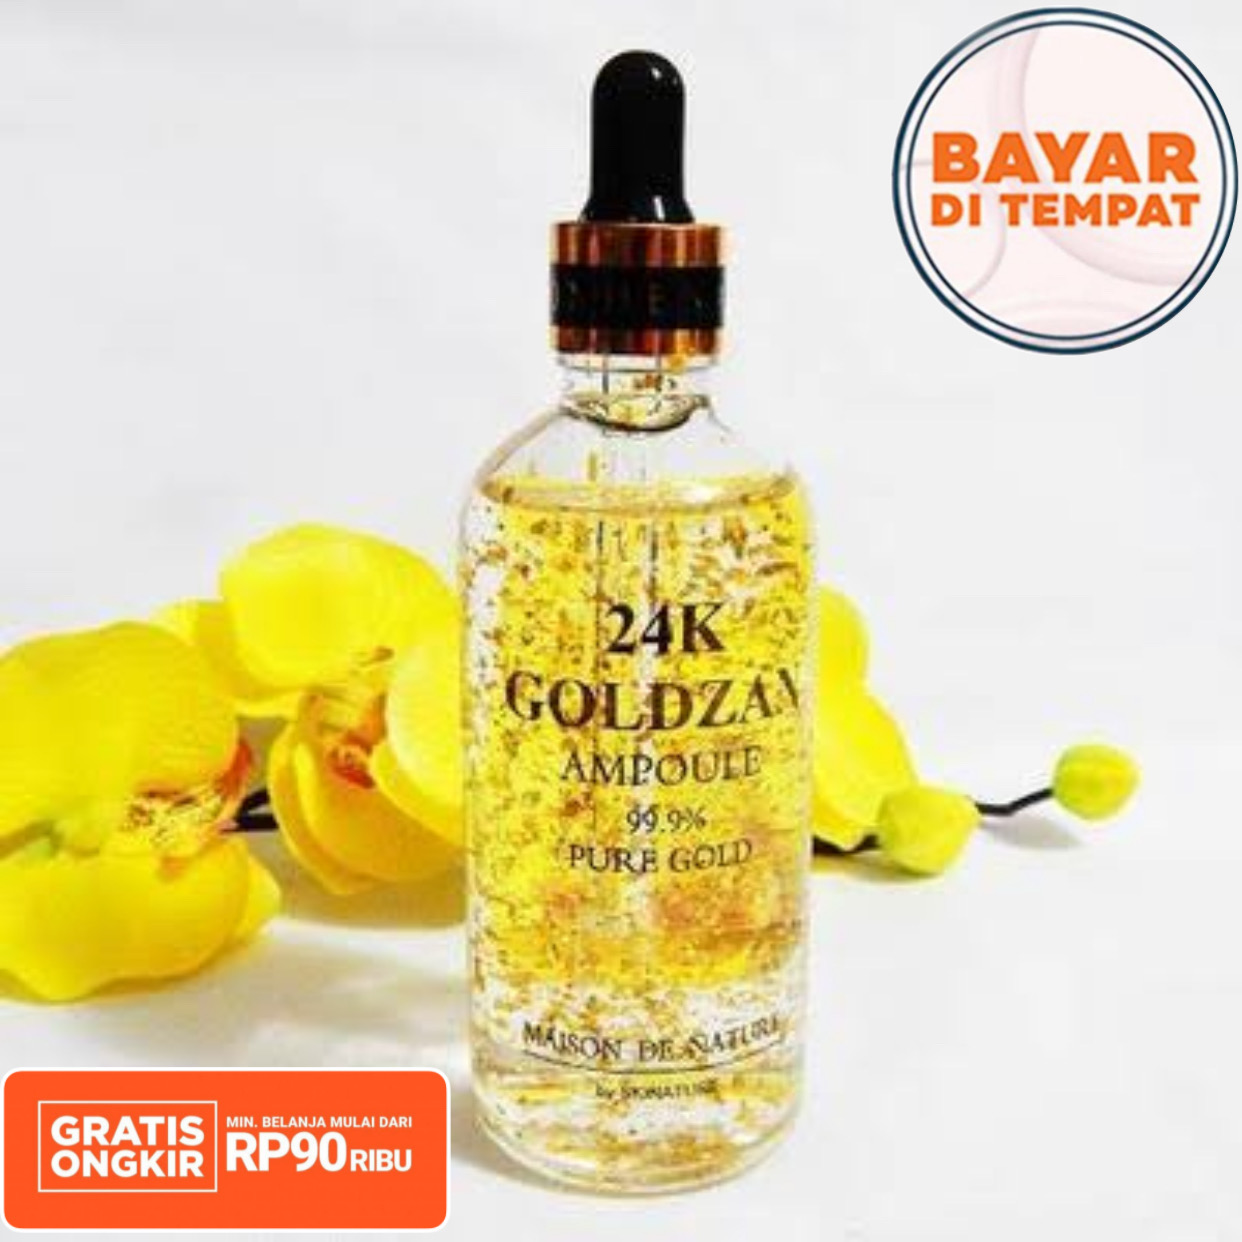 serum goldzan ampoule 24k isi 100 ml – serum wajah glowing / serum korea / serum vit c / serum wajah